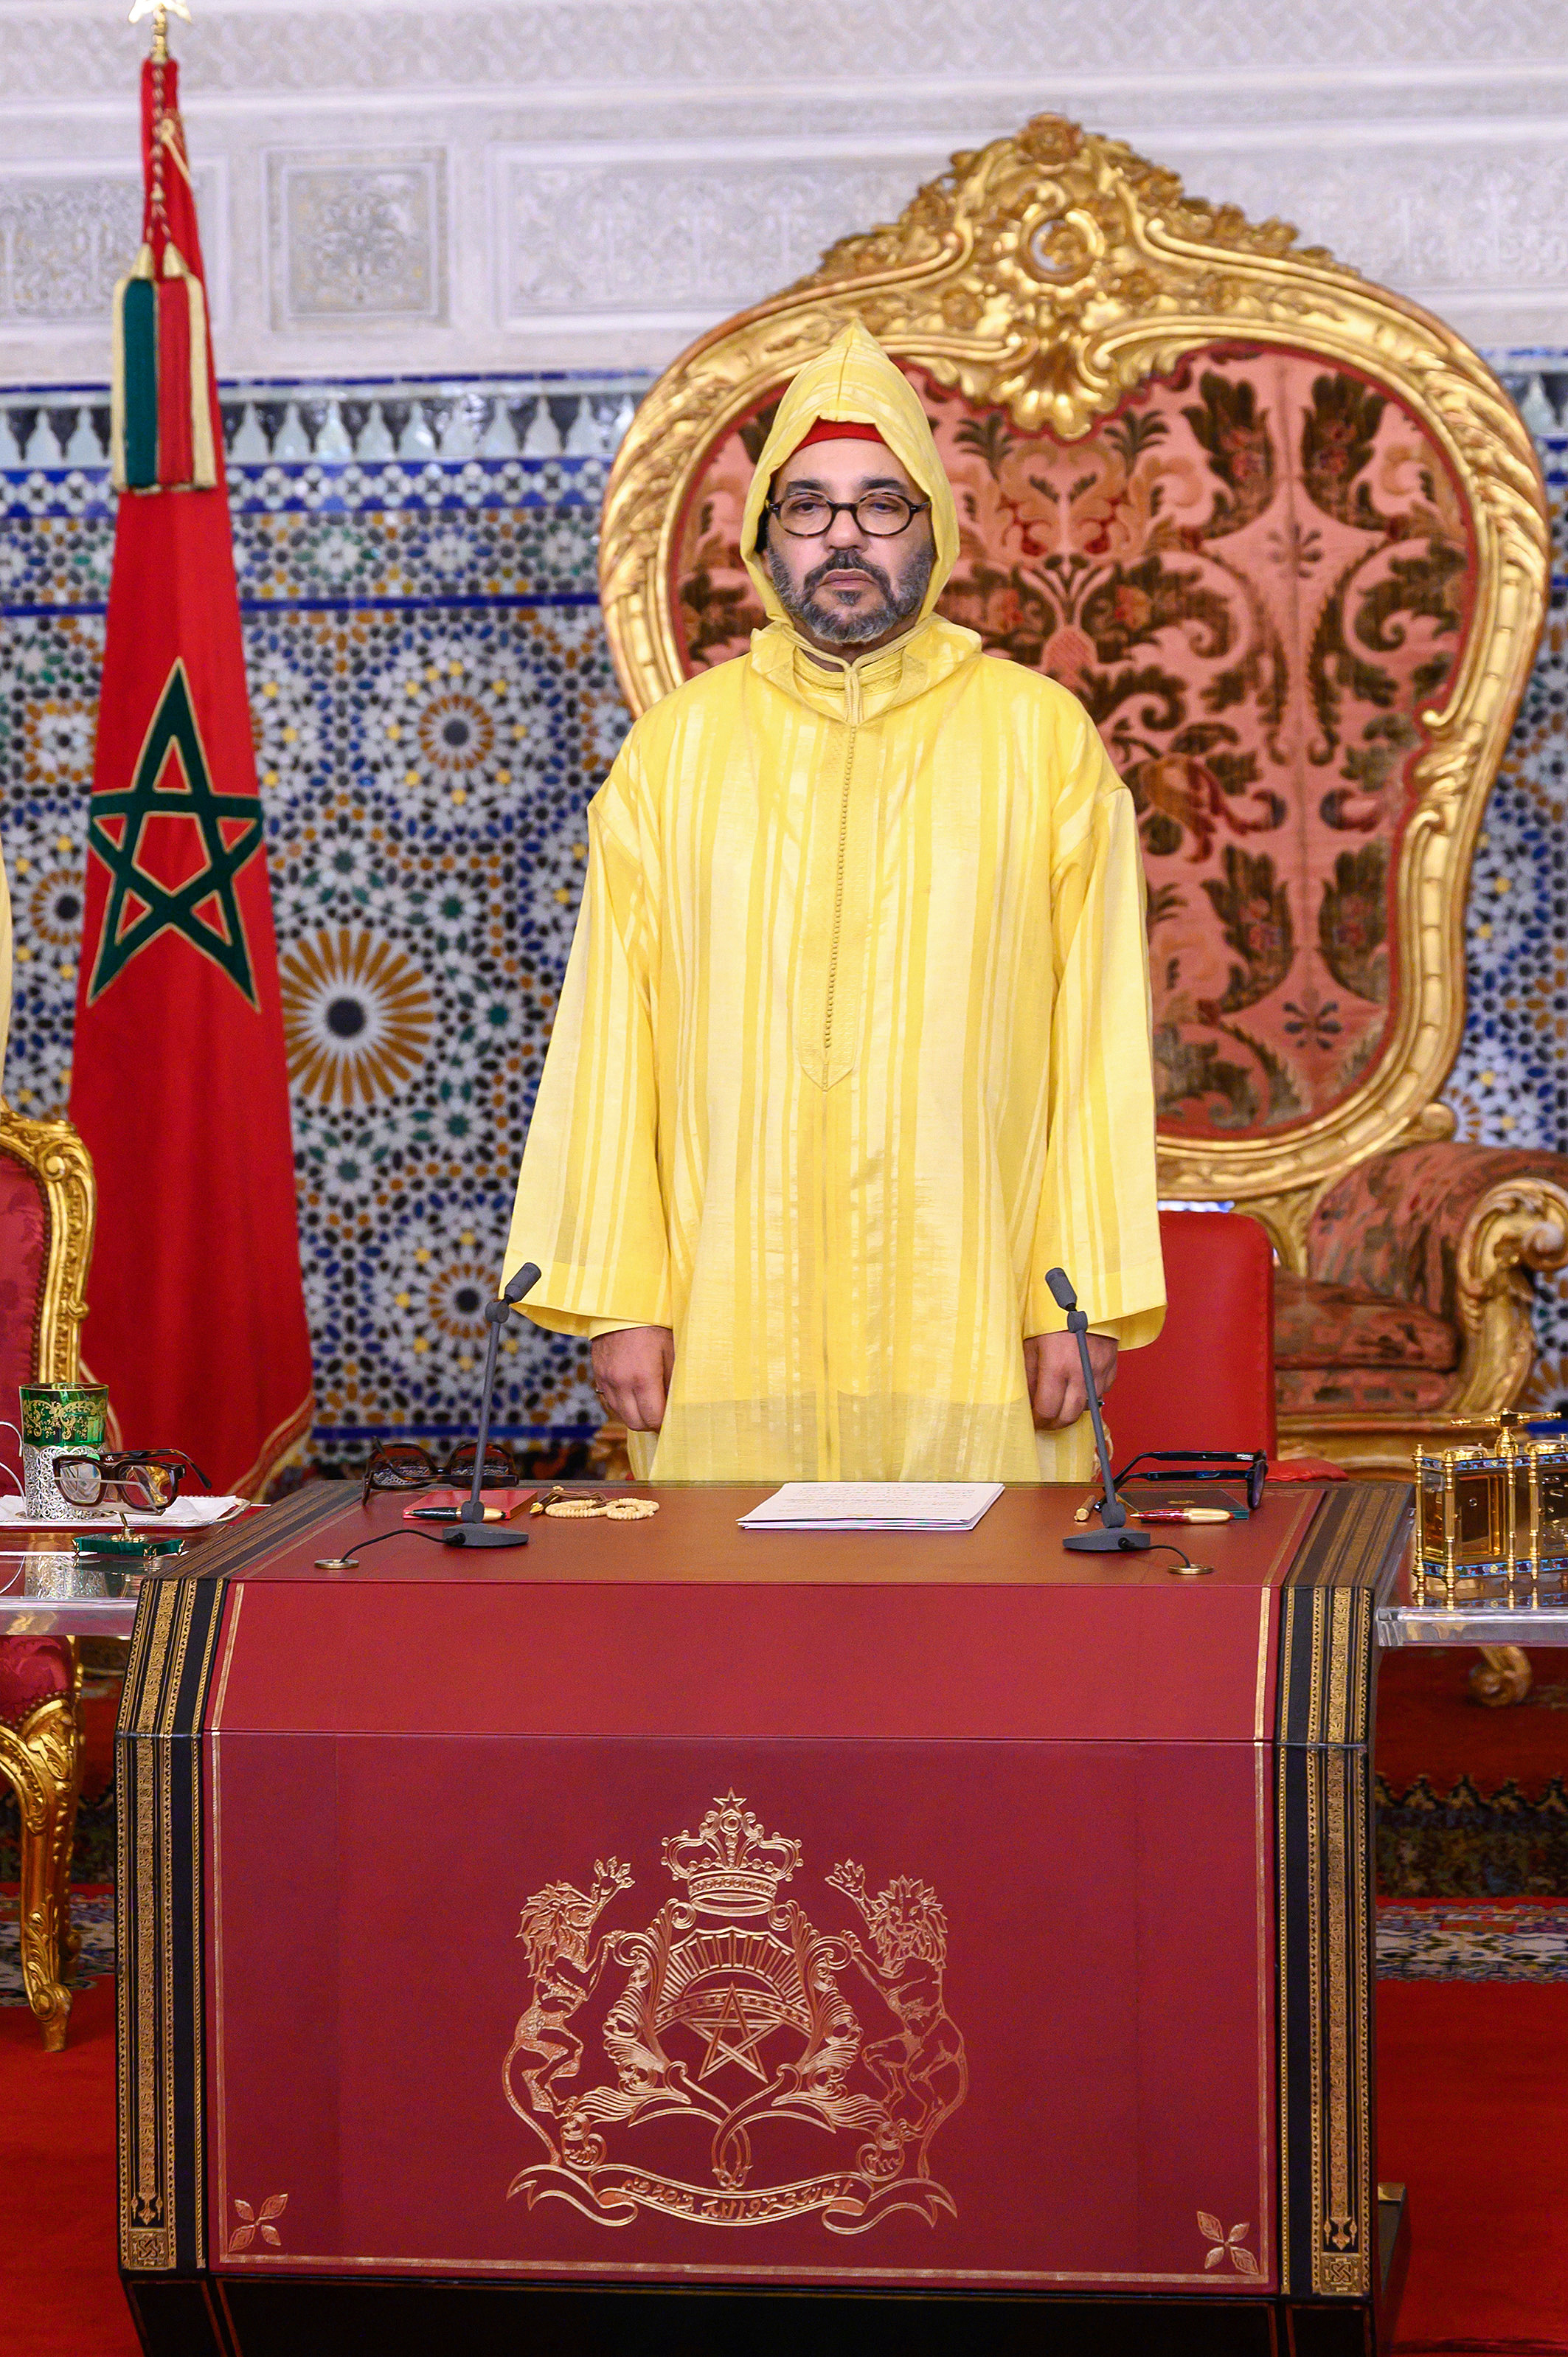 King Mohammed VI of Morocco deliveres a speech on occasion of the opening of the parliament, on October 09, 2020 in Rabat, Morocco. Photo via Azzize boukallouch/ABACAPRESS.COM